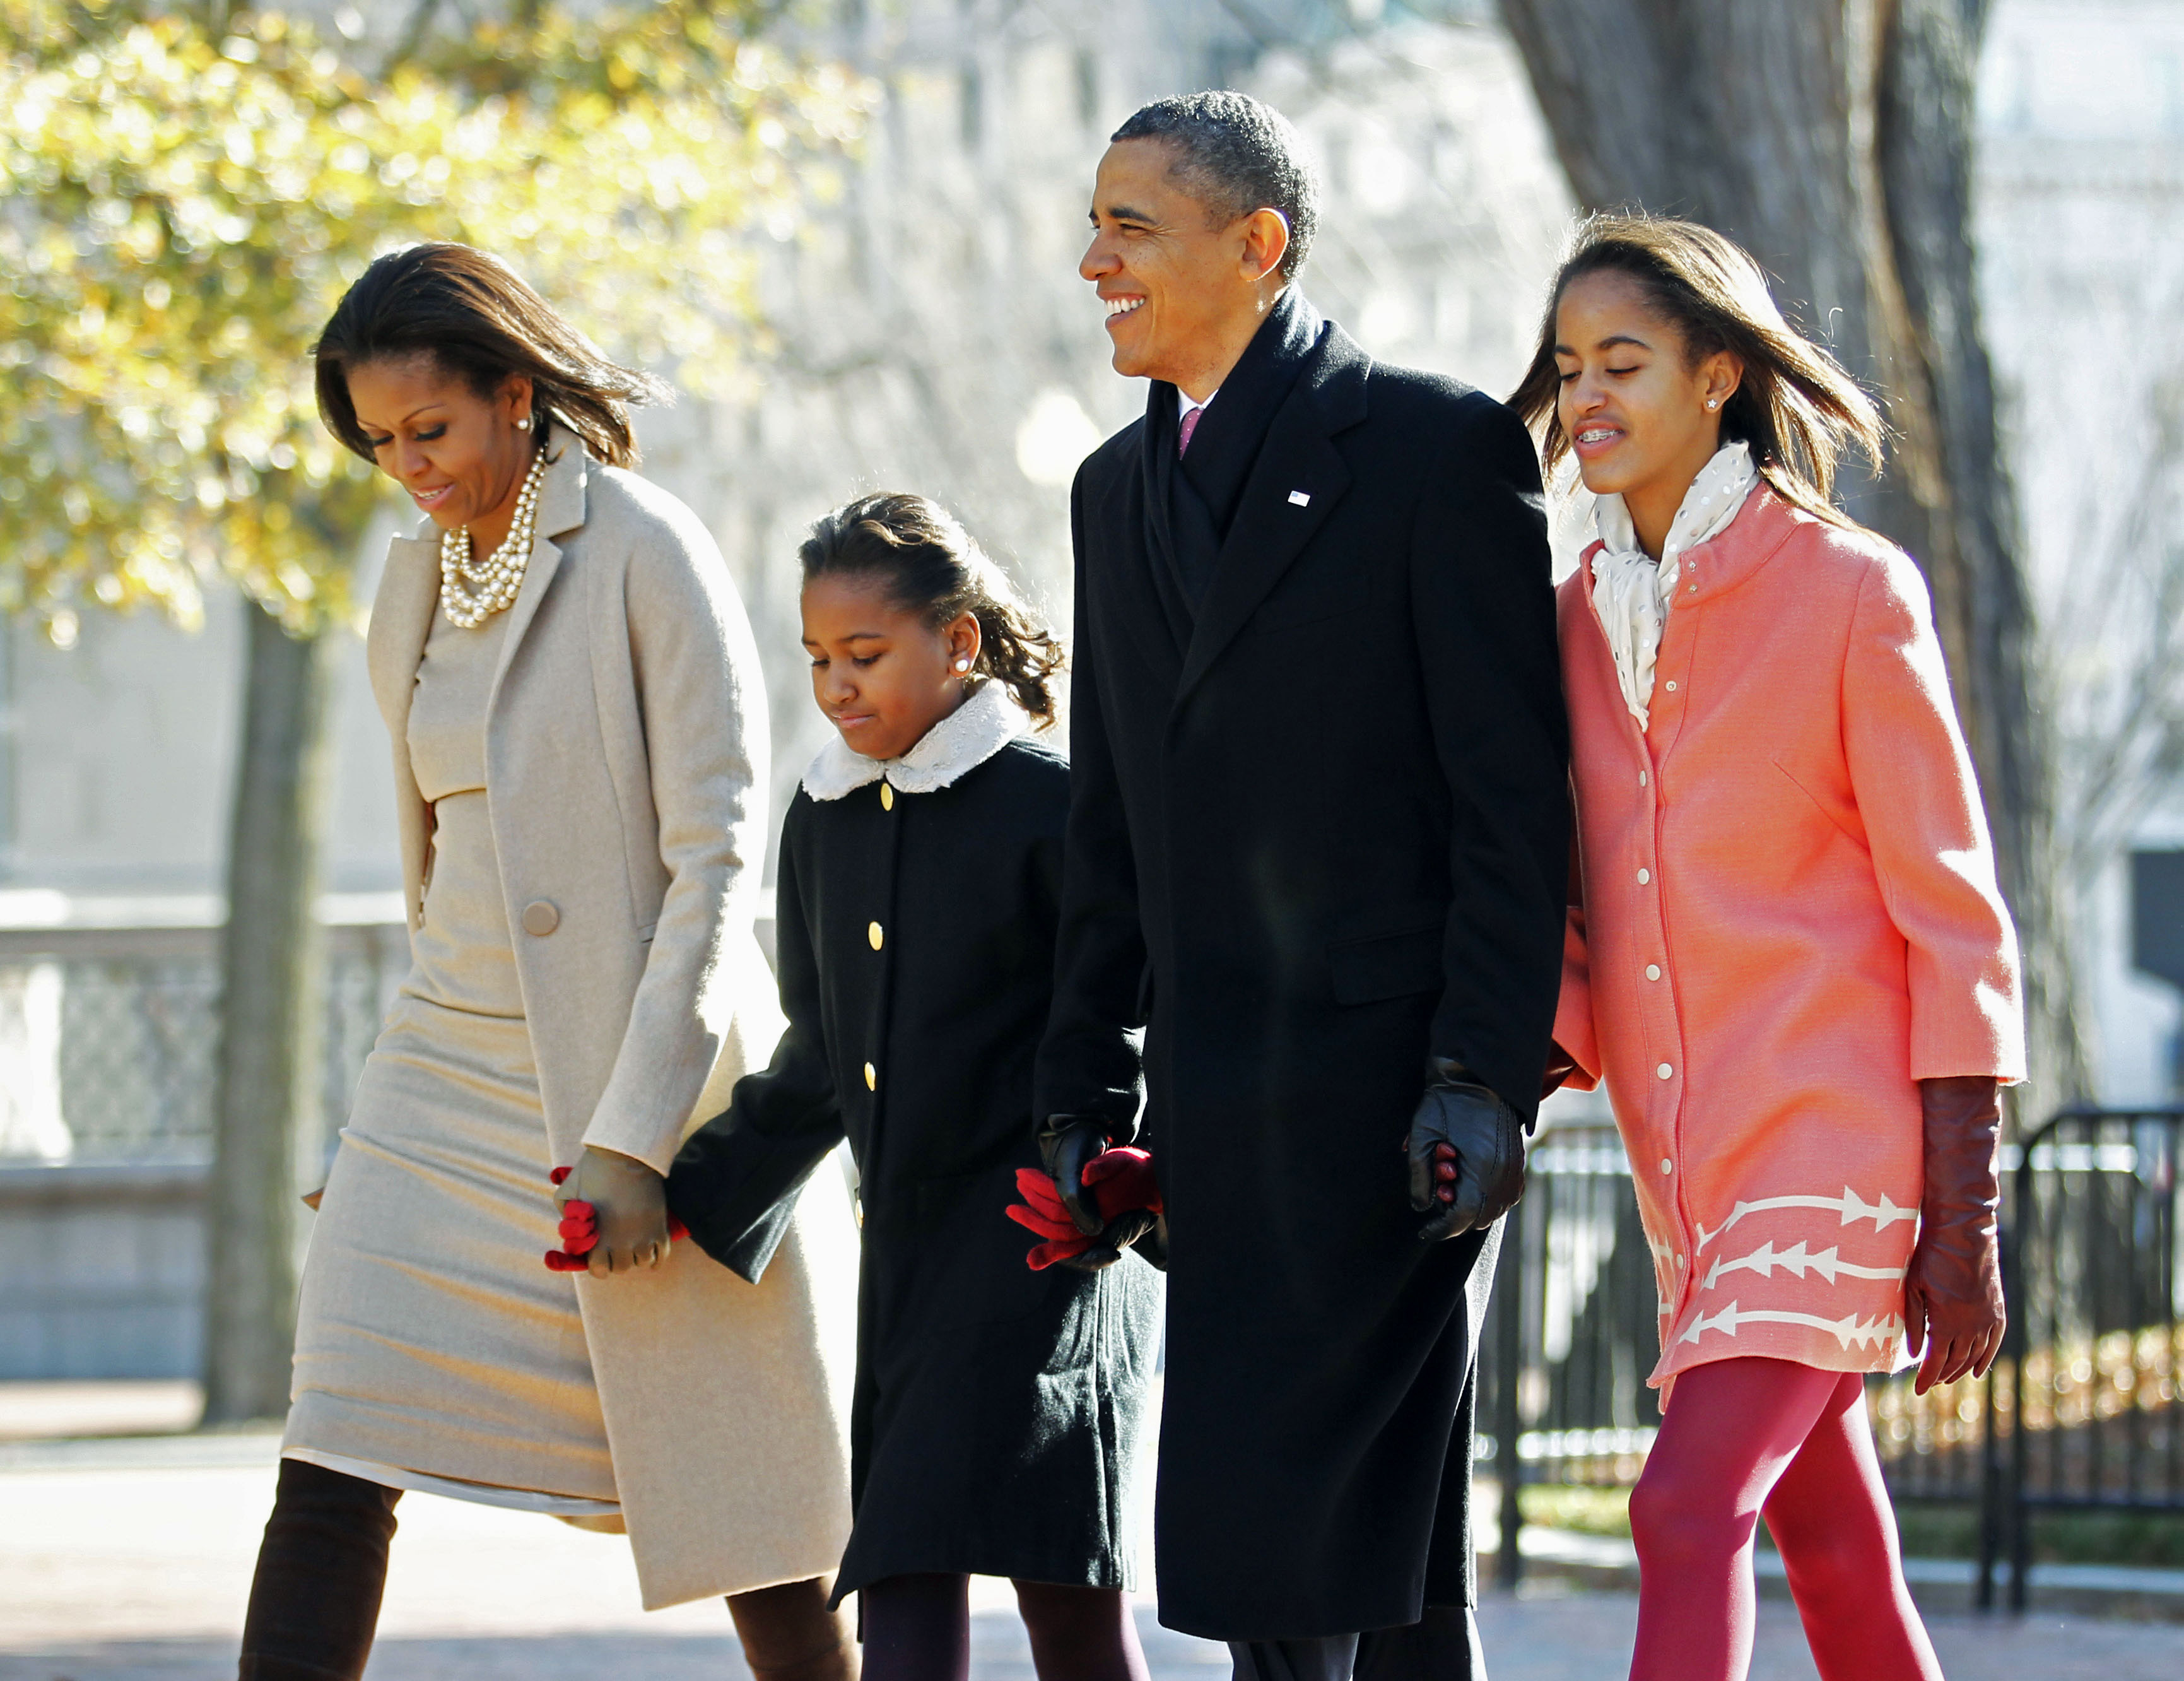 TN GOP aide resigns after knocking Obama s daughters